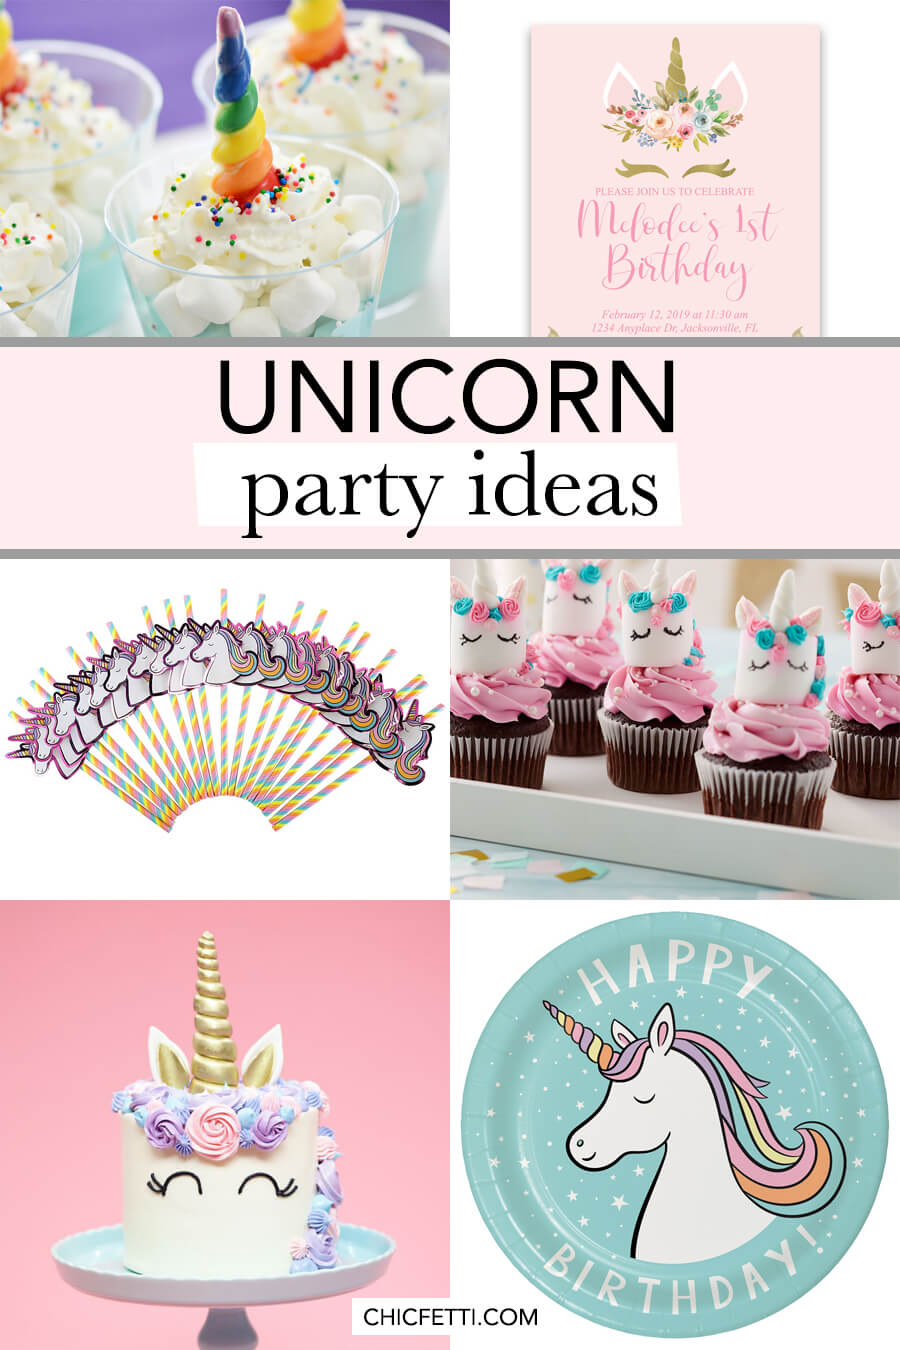 Plan the ultimate unicorn party with these unicorn party ideas! From the invitations to the cake, we have ideas for everything you will need to plan a unicorn birthday party. #unicornparty #unicornpartyideas #partyideas #unicorn #party #unicornbirthday #unicorninvitation